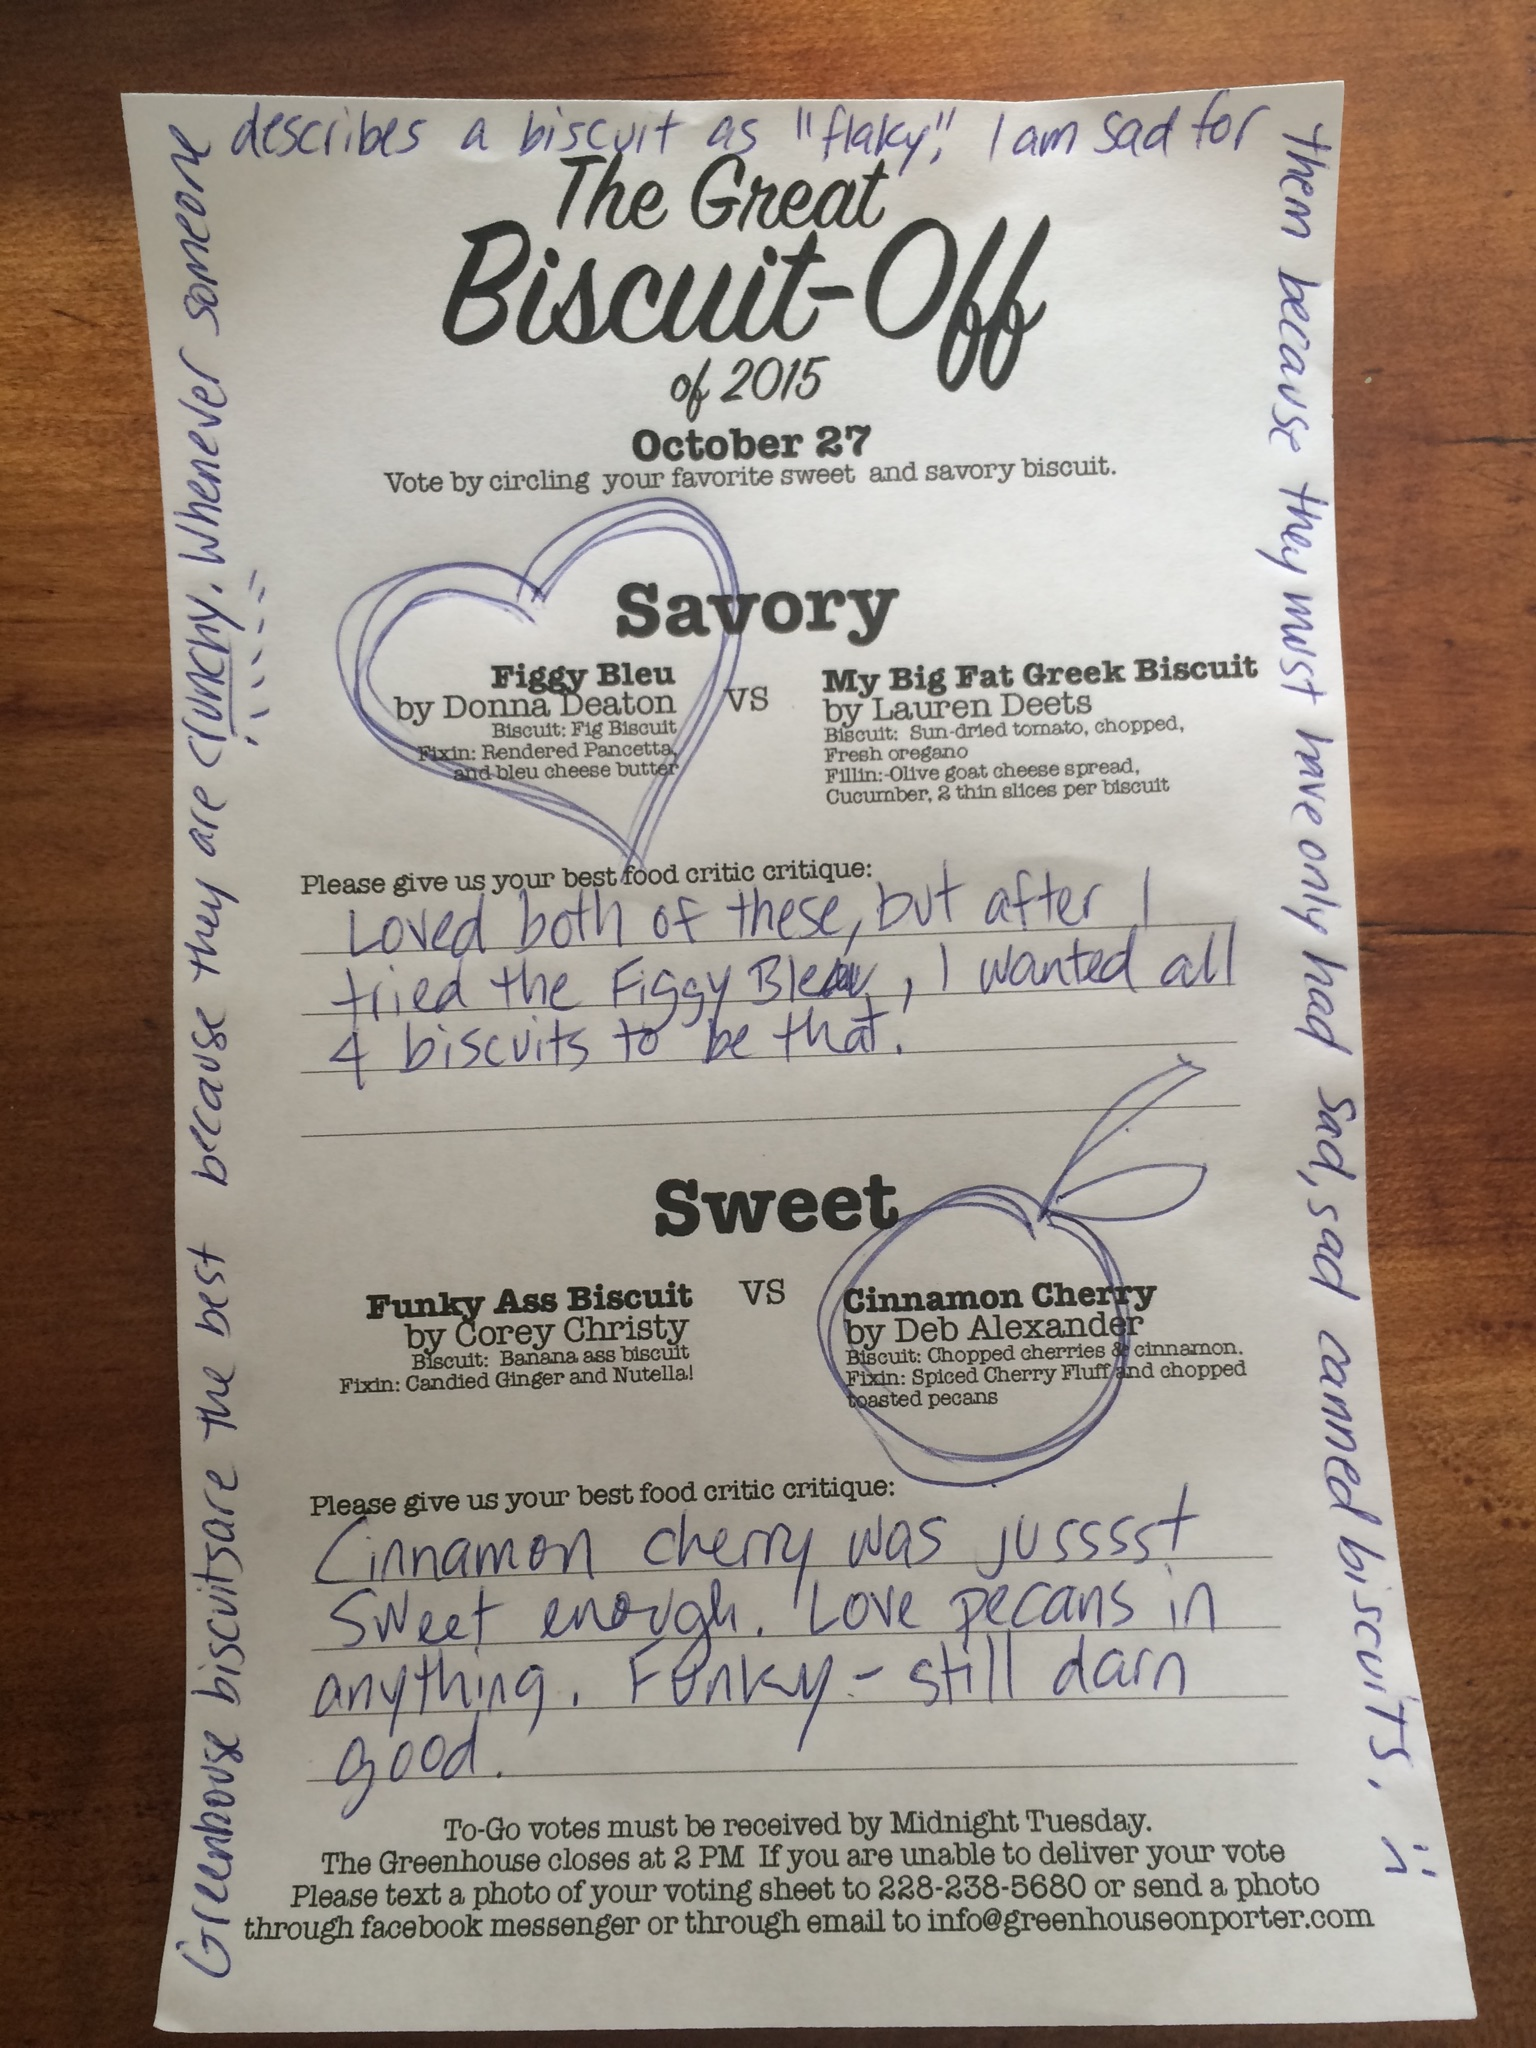 Thanks for the great comments about our biscuits, and giving us something fun to look at!